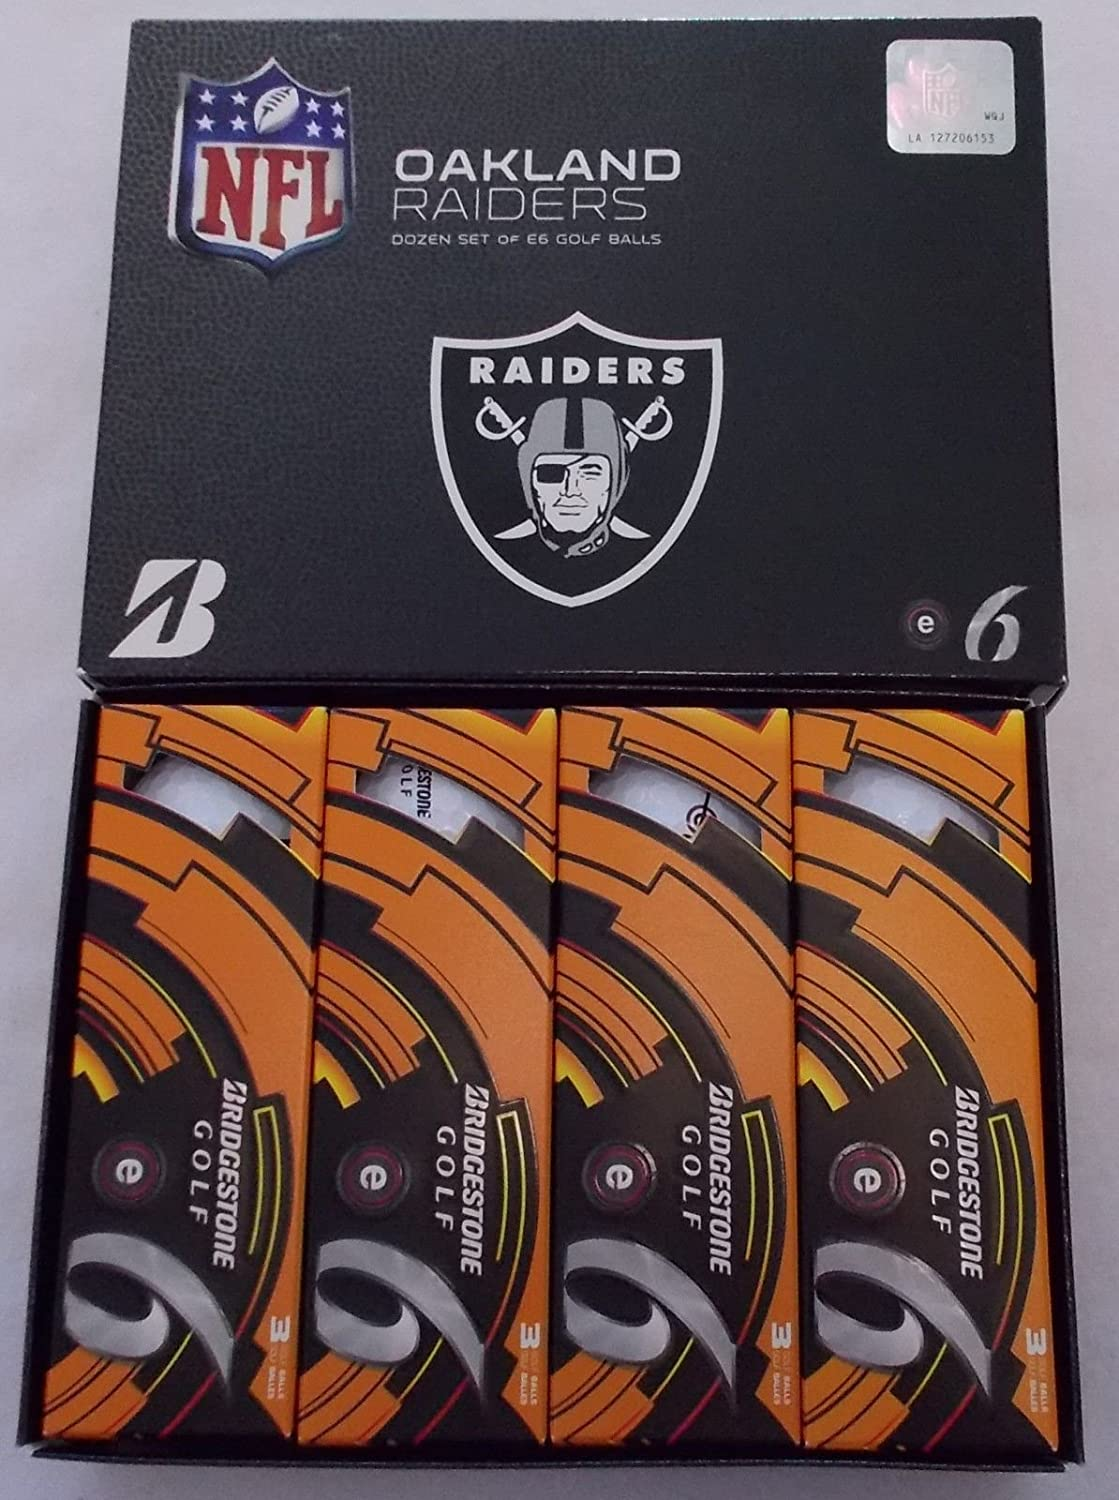 New Bridgestone E6 2013 NFL Golf Balls - 1 Dozen - Oakland Raiders